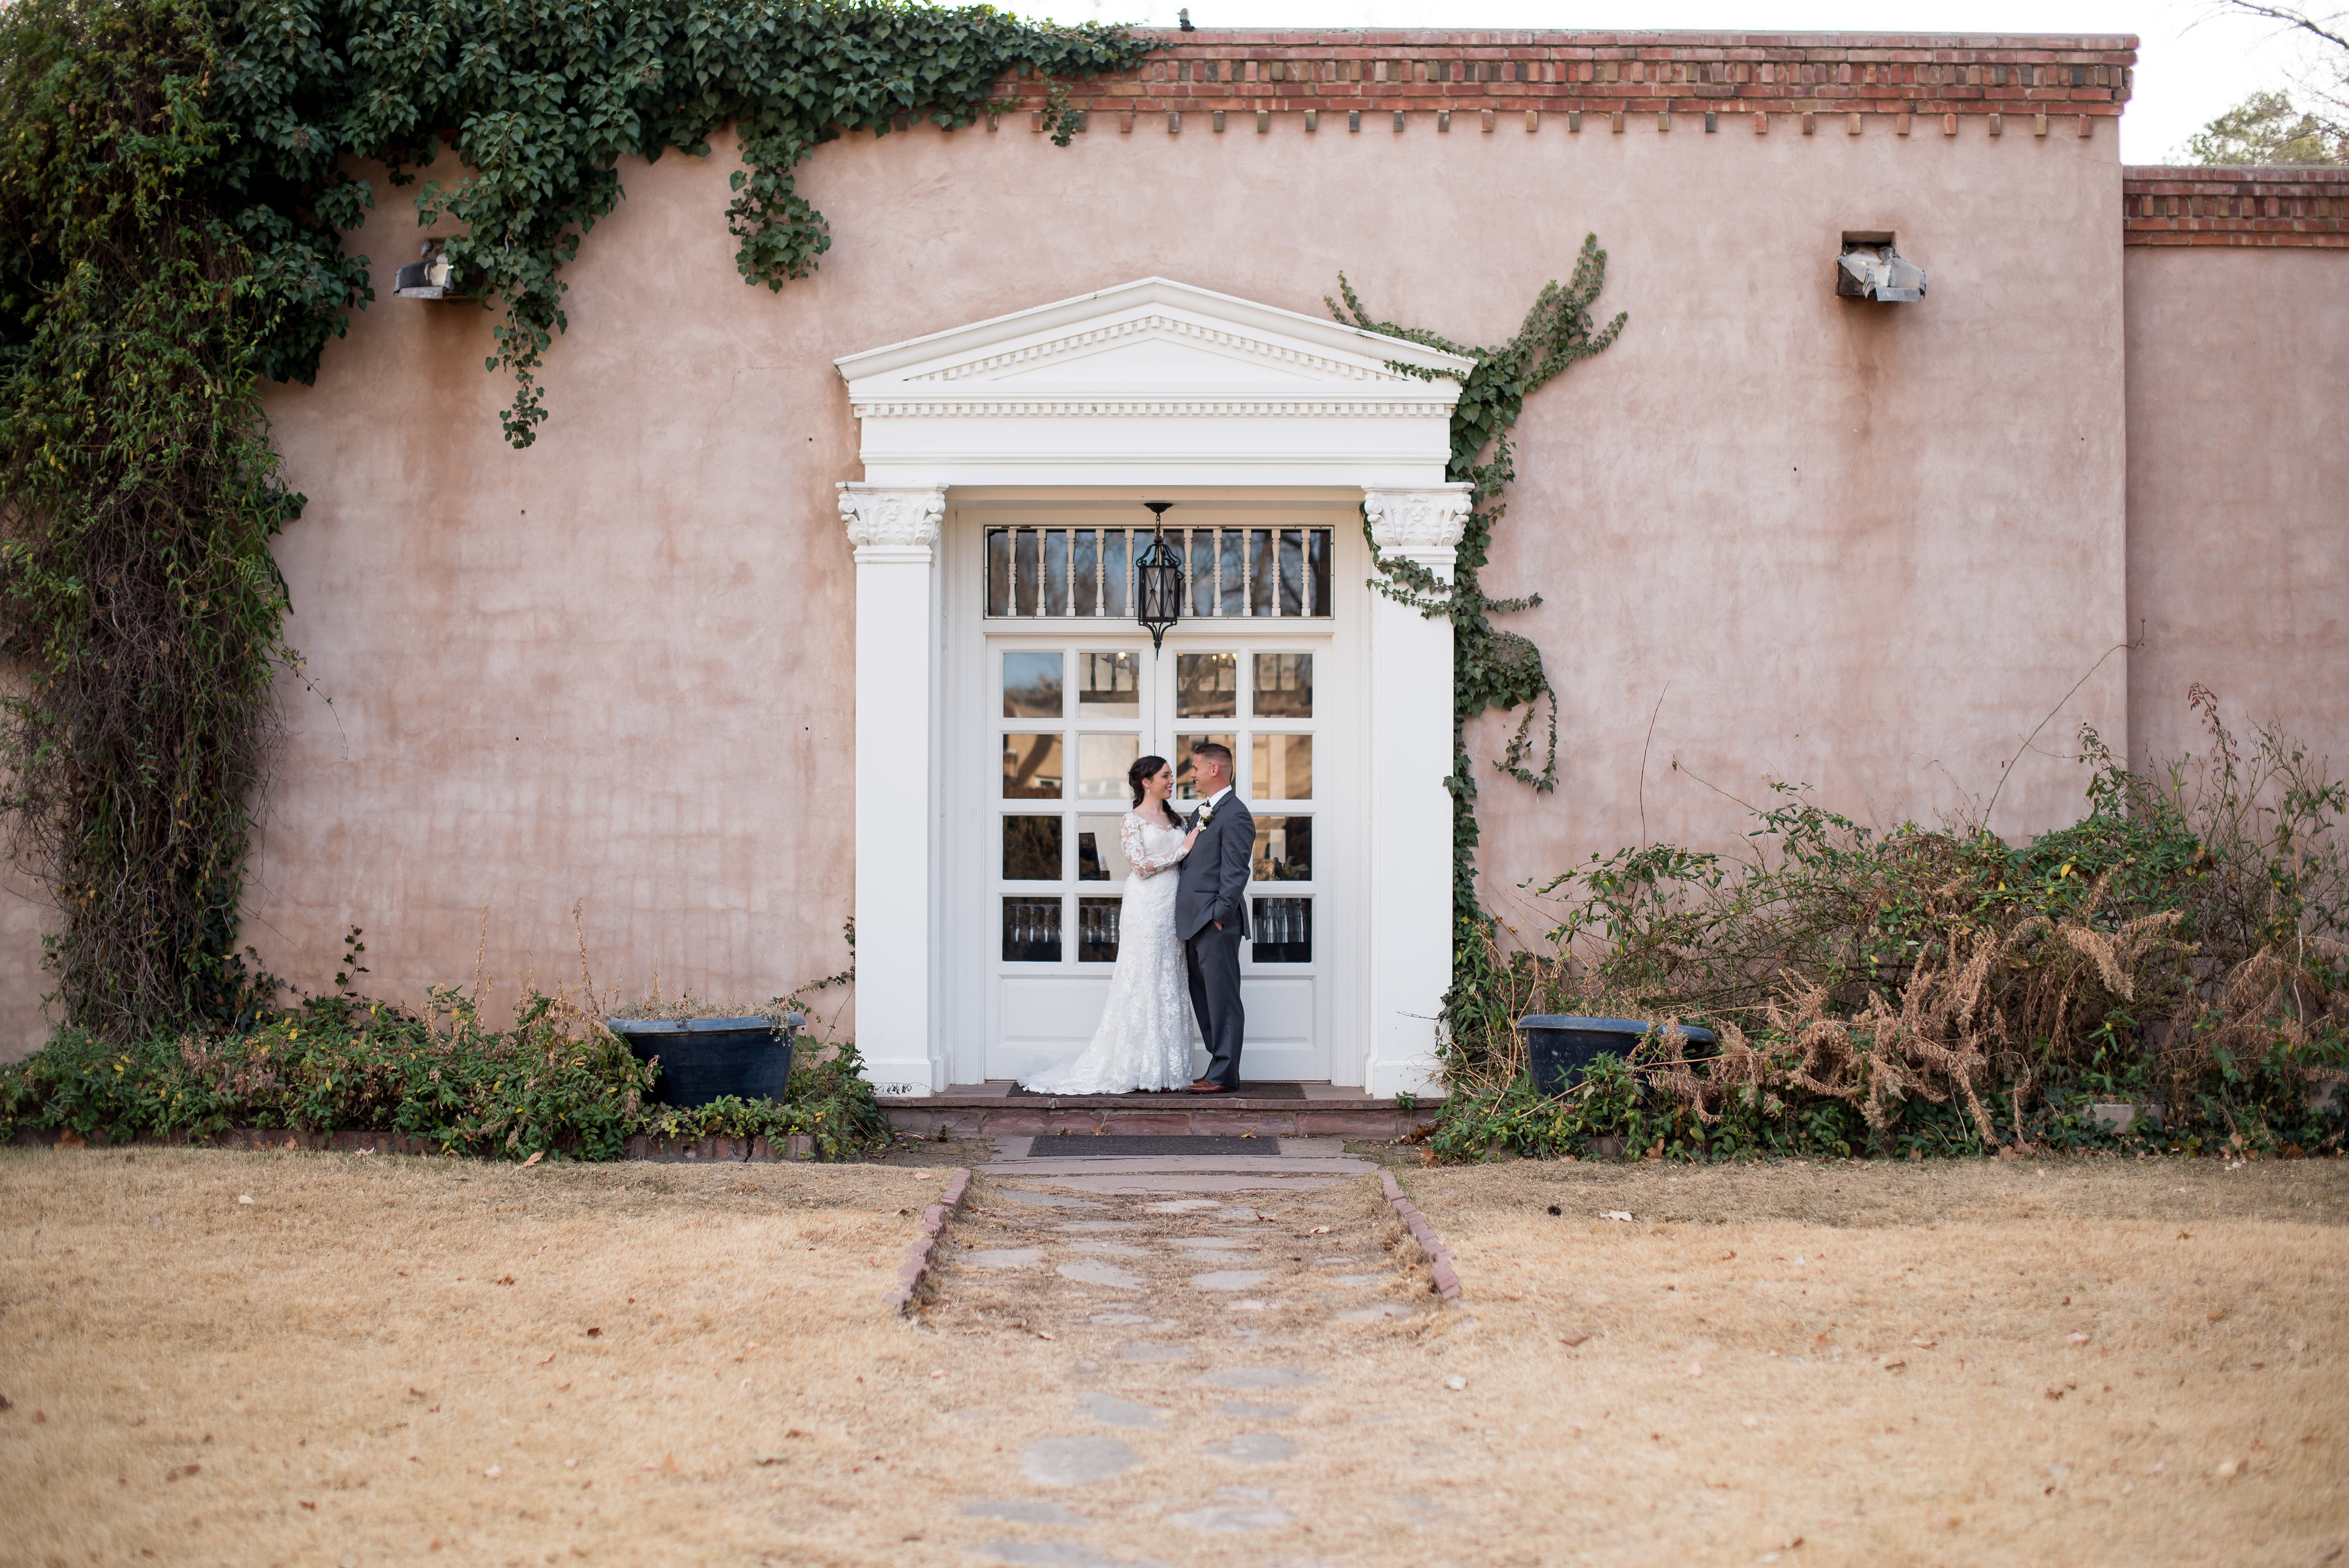 wedding planning design decor inspo real local New Mexico Perfect Wedding Guide outdoor couple love bride groom natural light ceremony first look romantic professional architecture historical farm